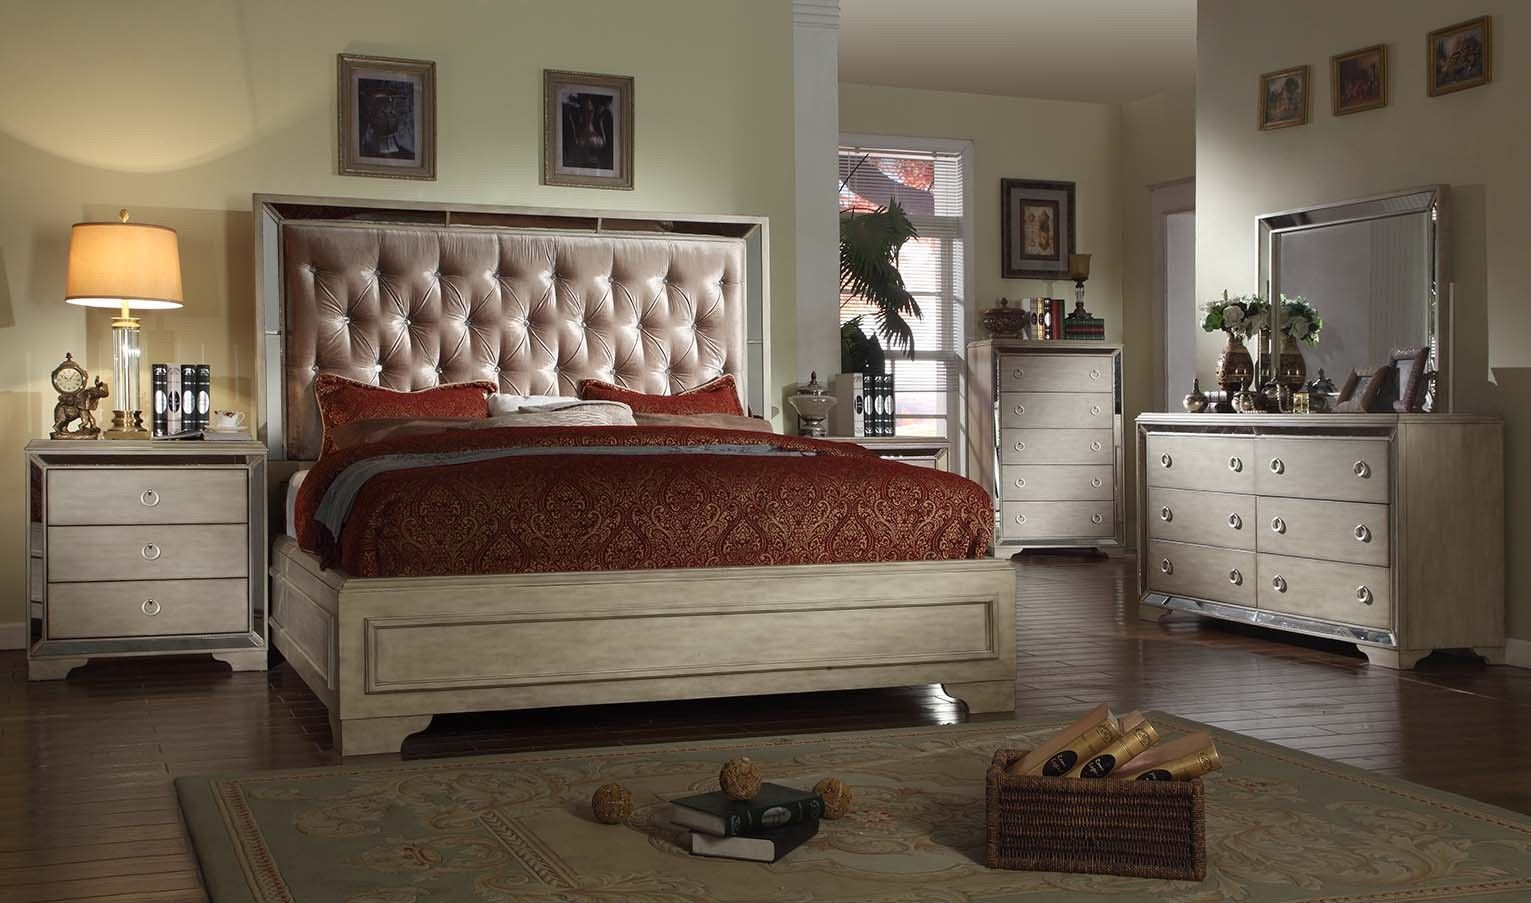 Mcferran RB9805 Imperial Eastern Queen Bedroom set 5.pc Chic Contemporary Style